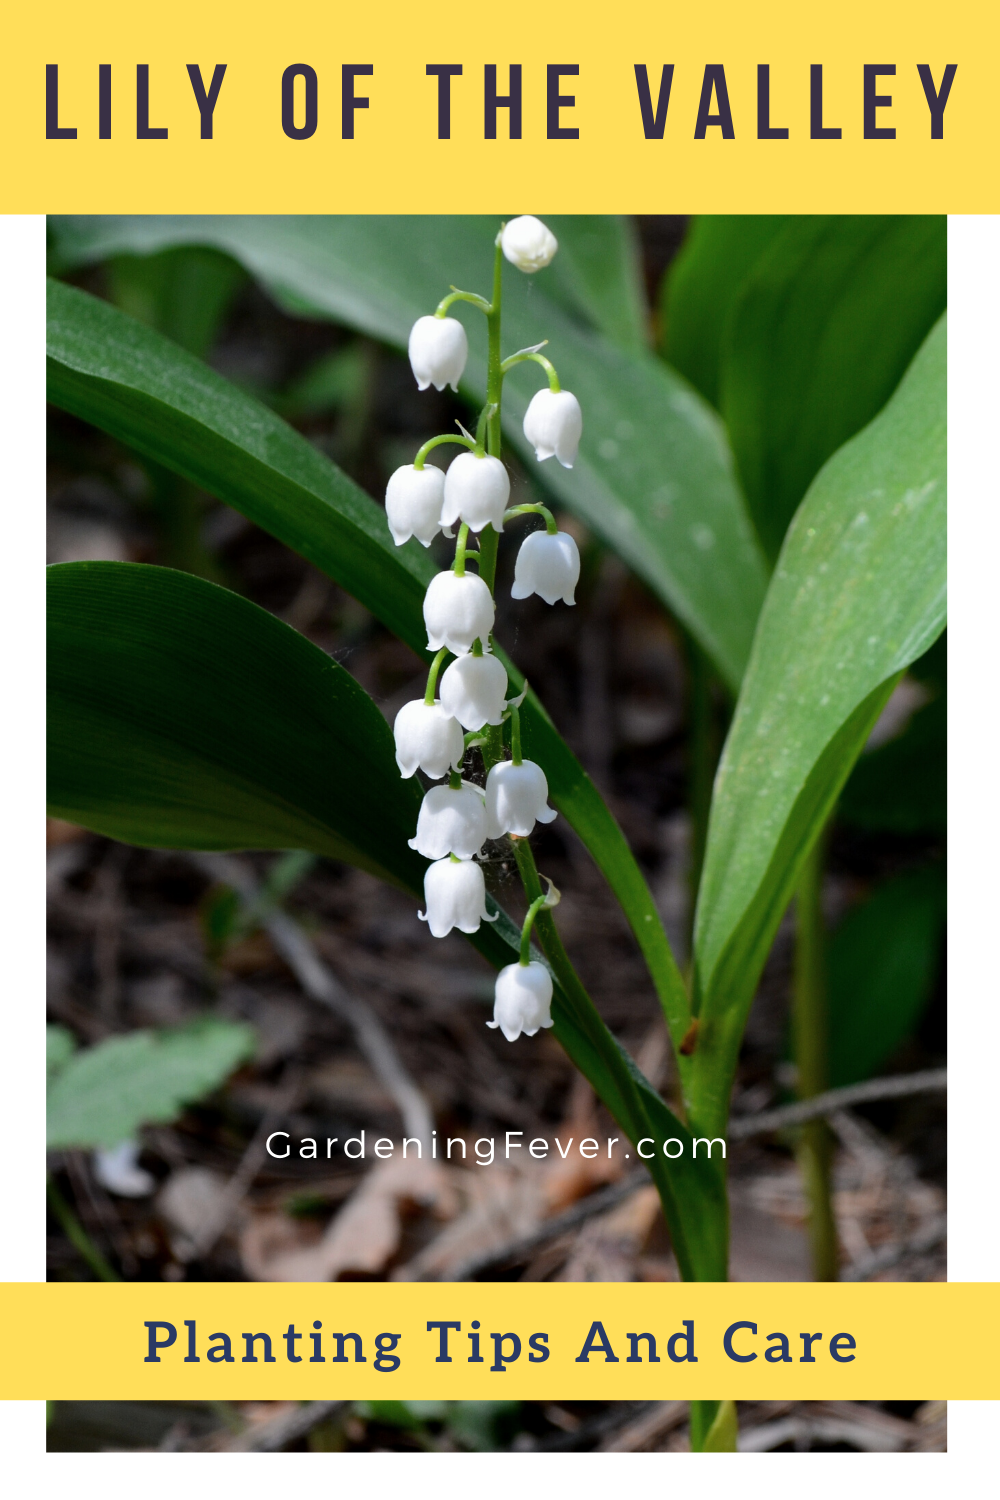 Lily Of The Valley Planting Tips And Care In 2020 Plants Lily Of The Valley Gardening For Beginners